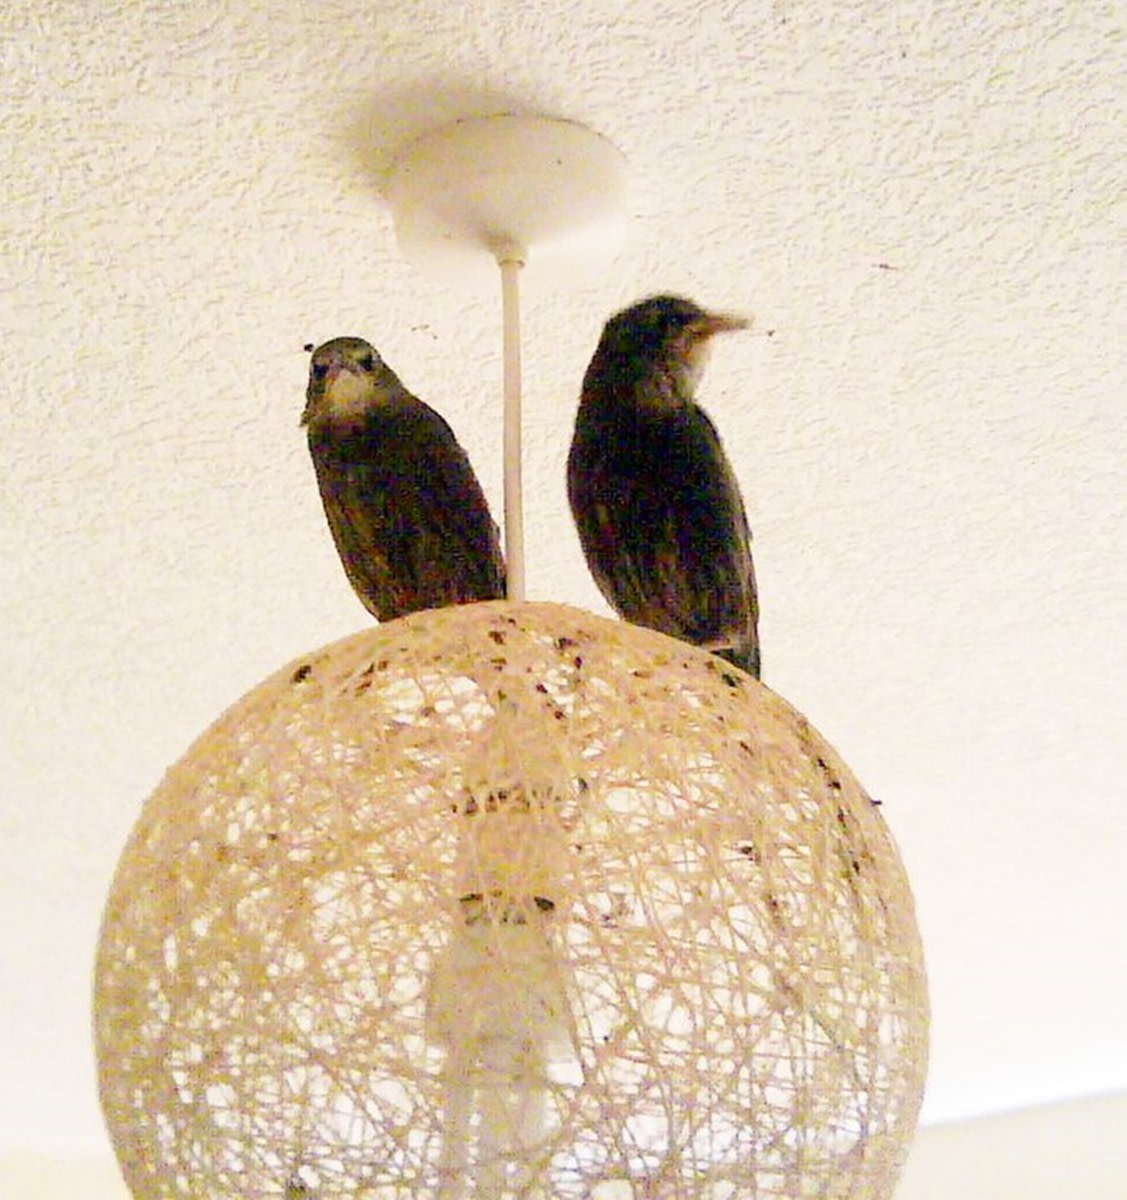 Tweety and Chirpy were very adventurous when they learned how to fly. They took to sitting on the bedroom light and often wouldn't come down except to feed,